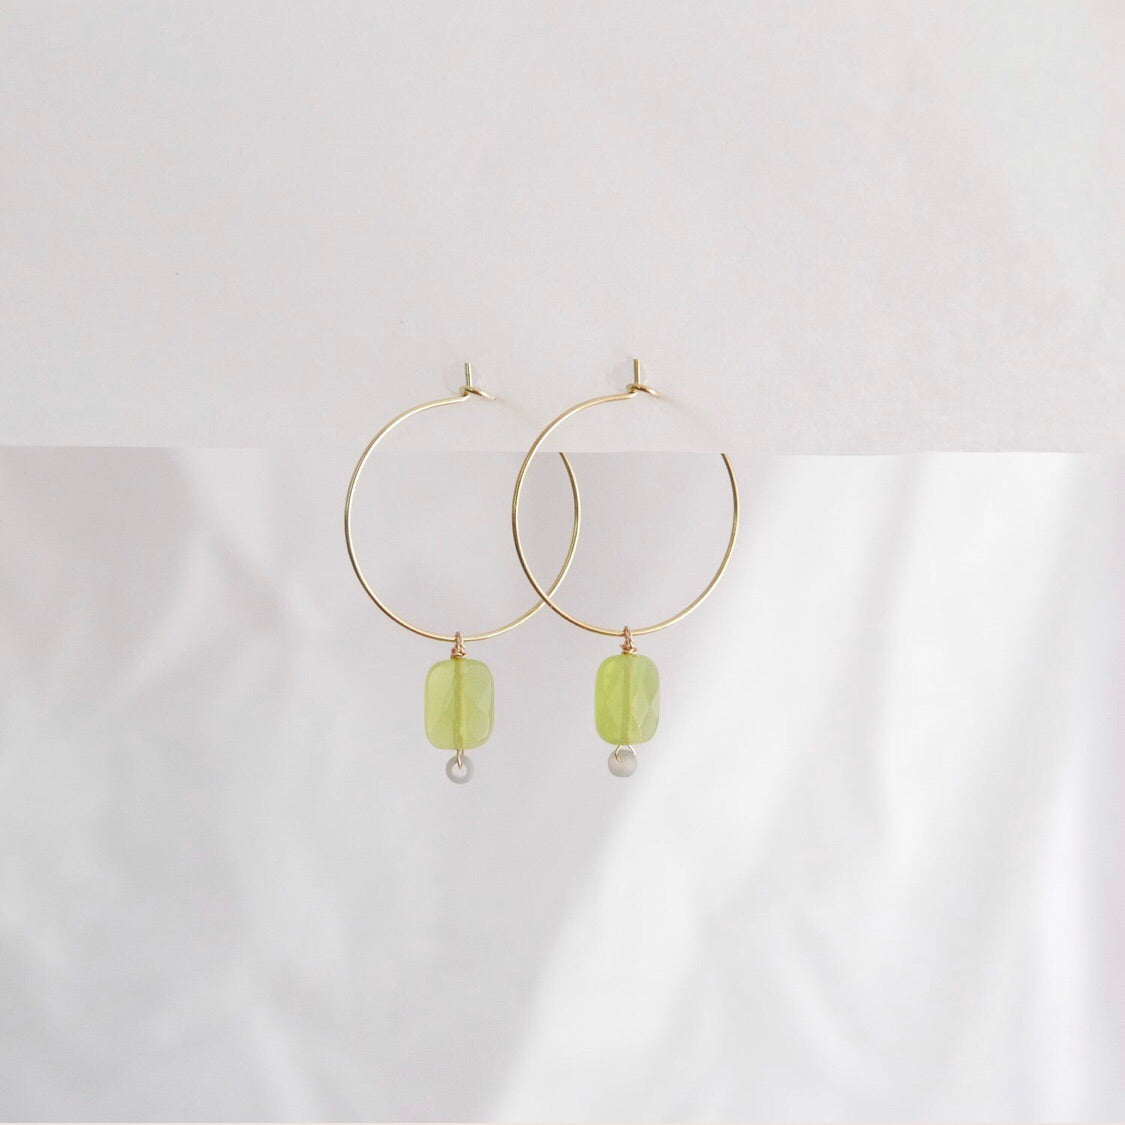 Goodheart hoops - Agates Pistachio + Grey + gold plate